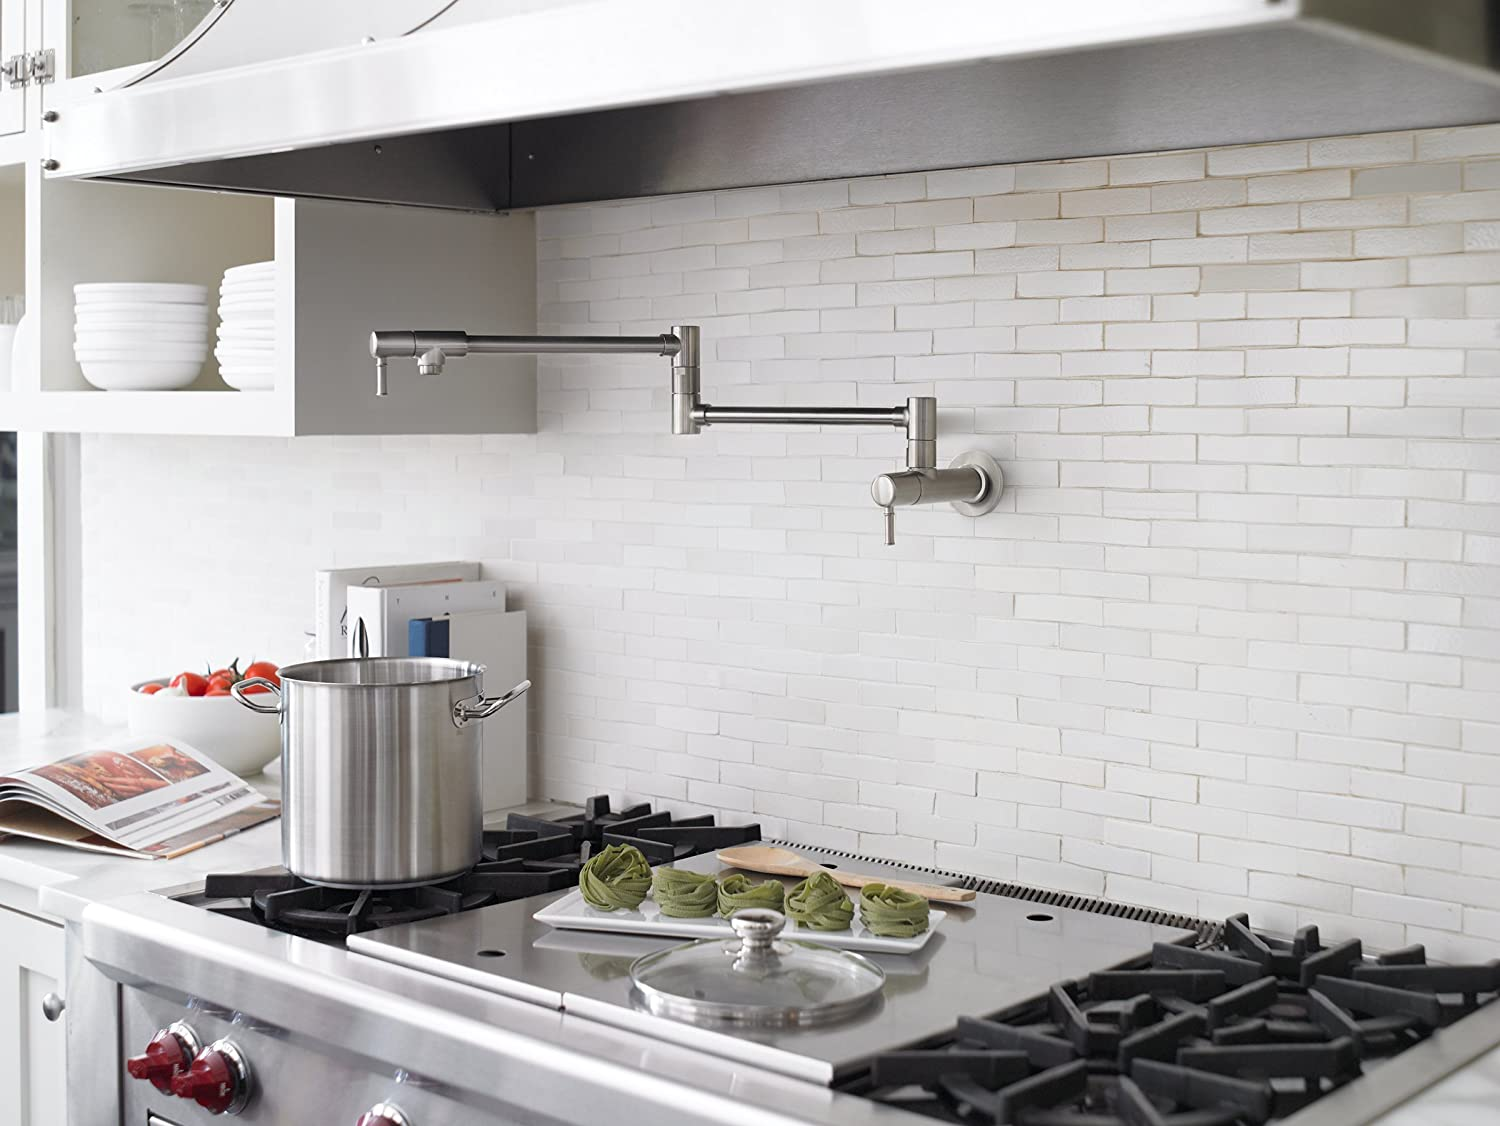 Hansgrohe 04218000 Talis C Pot Filler, Wall Mounted, Chrome   Pot Filler  Kitchen Sink Faucets   Amazon.com